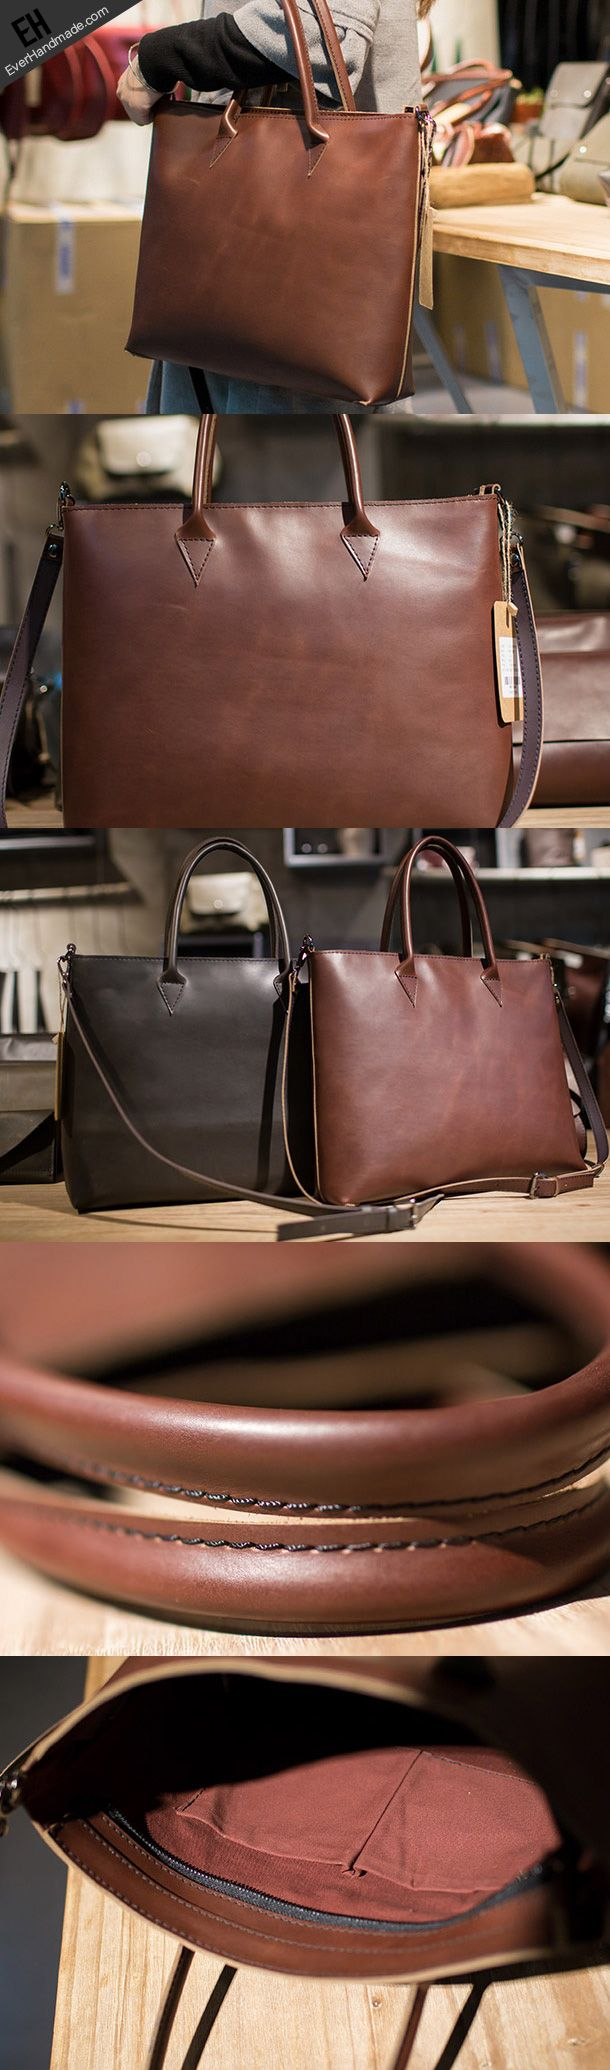 Handmade Leather big handbag dark coffee brown for women leather shoulder bag